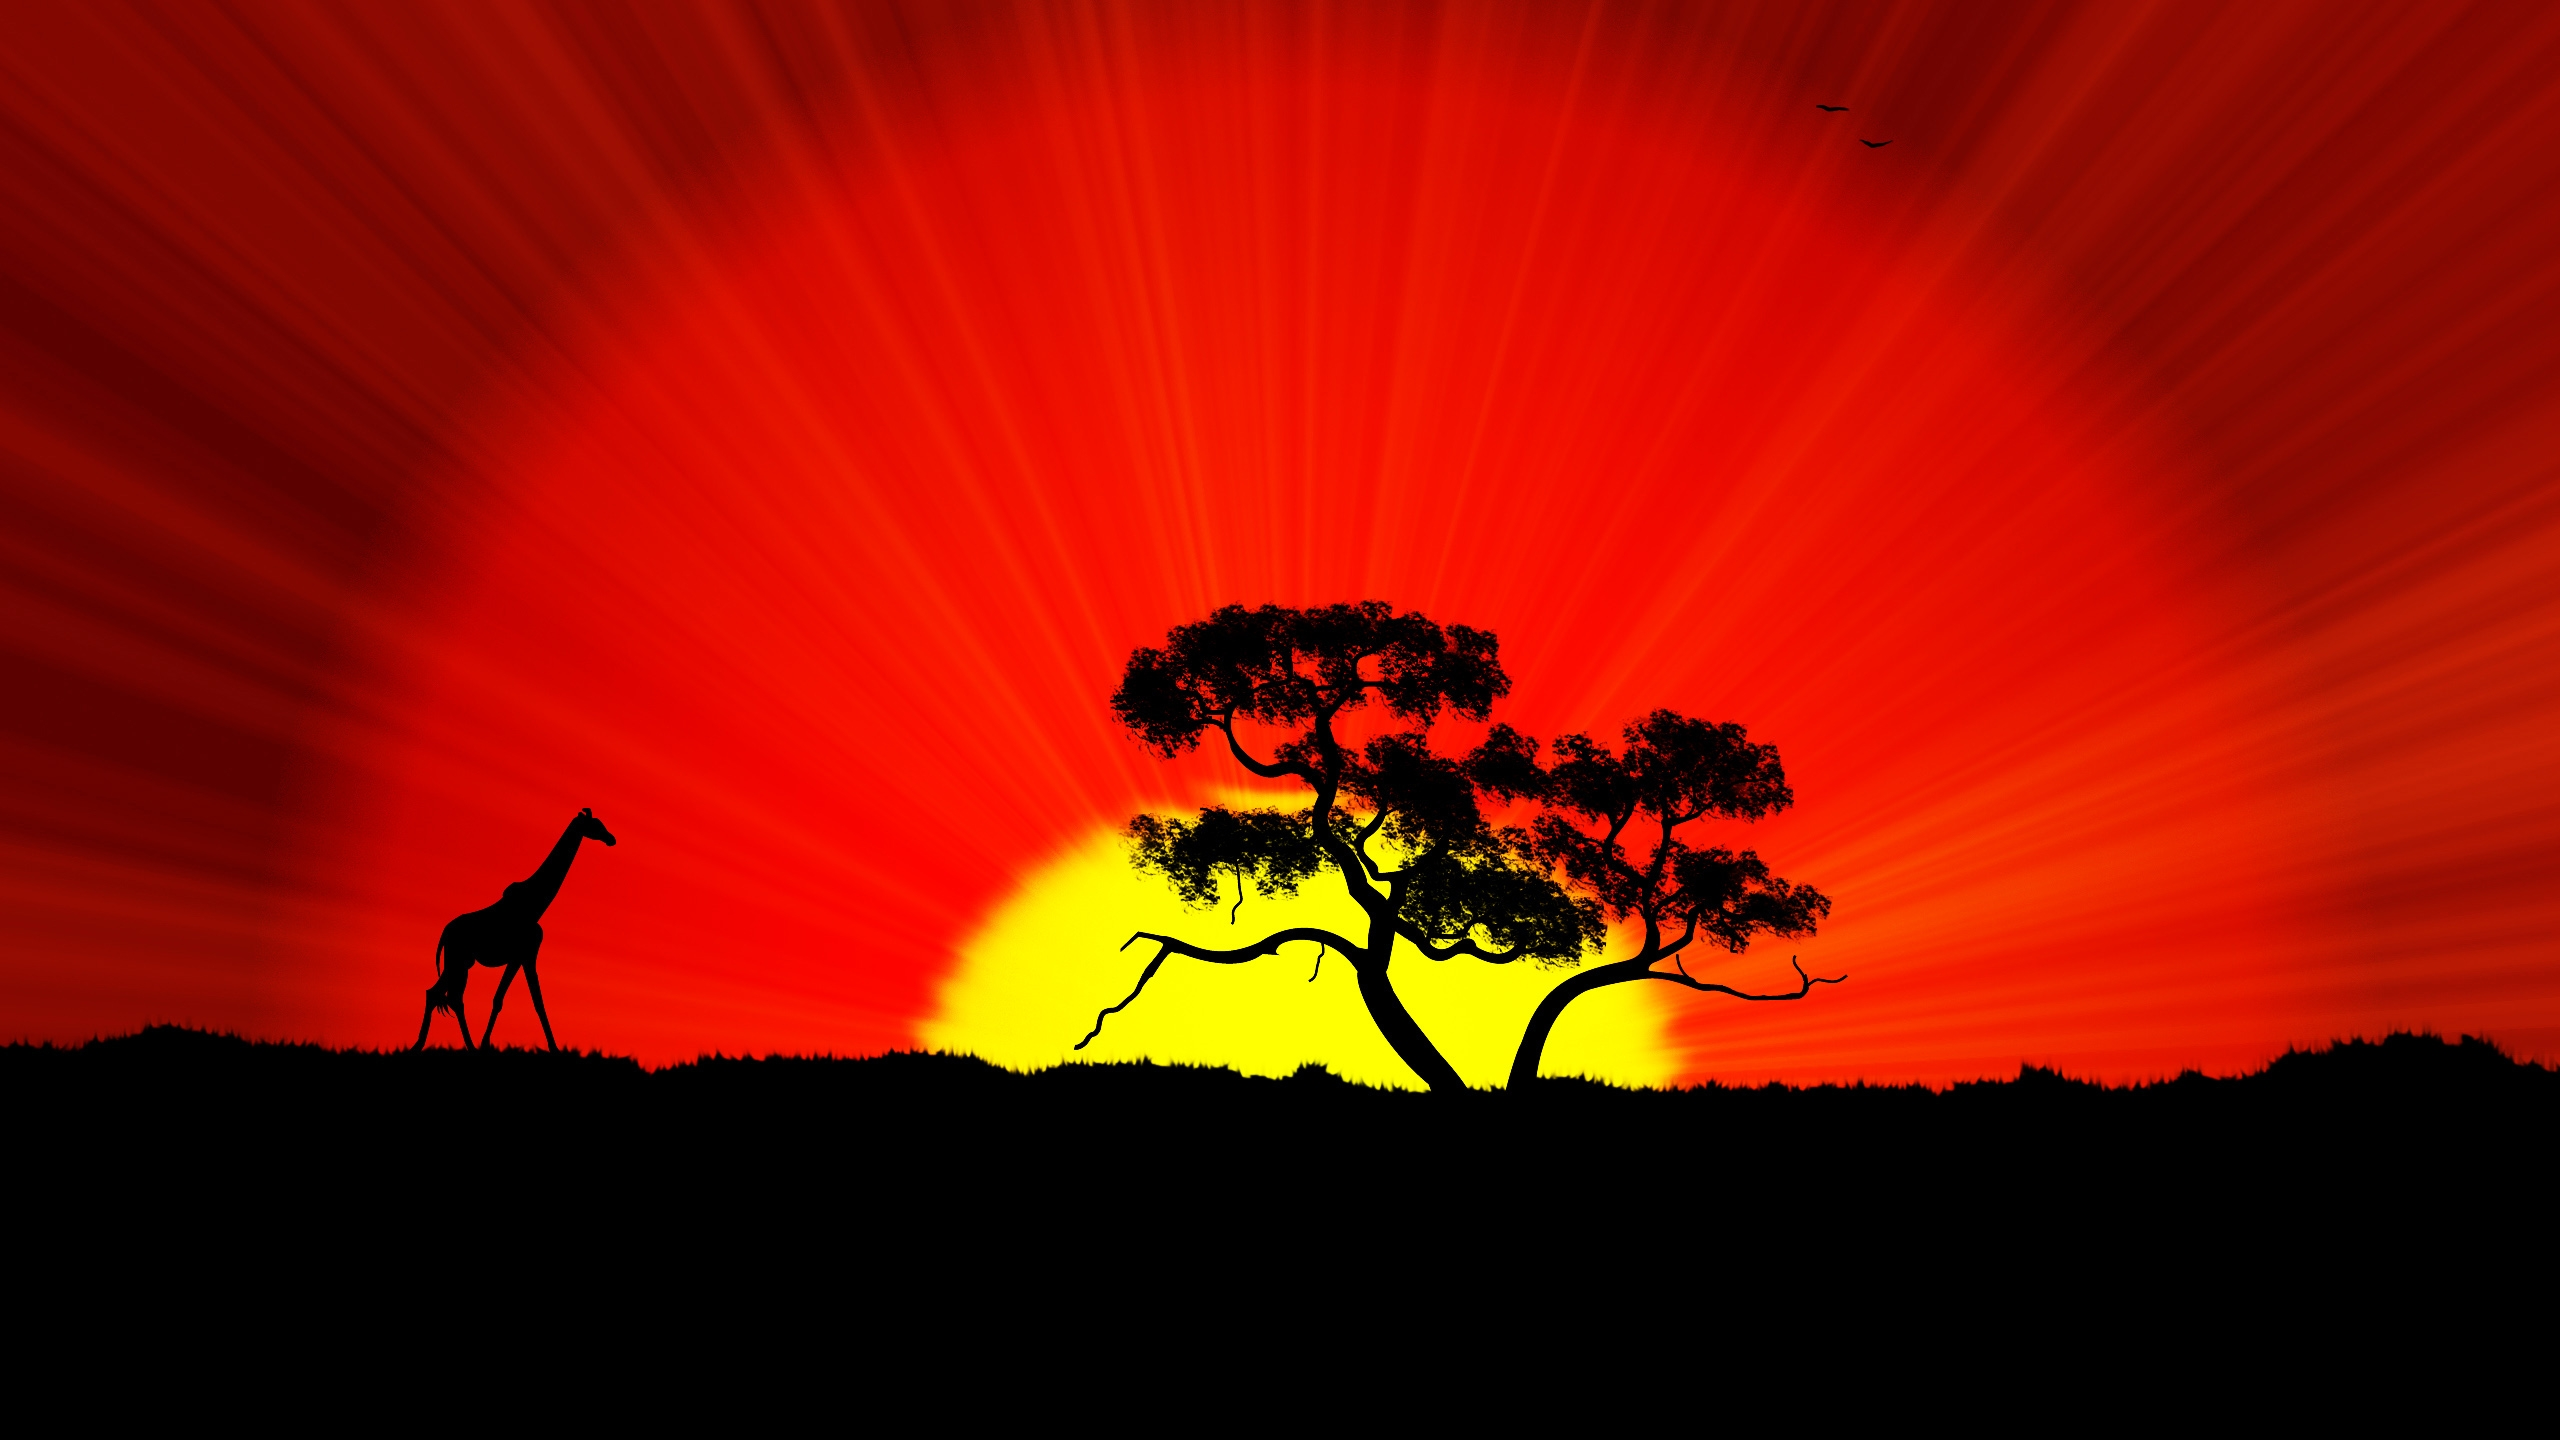 The-World-Africa-Free-Hd-Your-HD-ID-shared-via-SlingPic-wallpaper-wp30011294